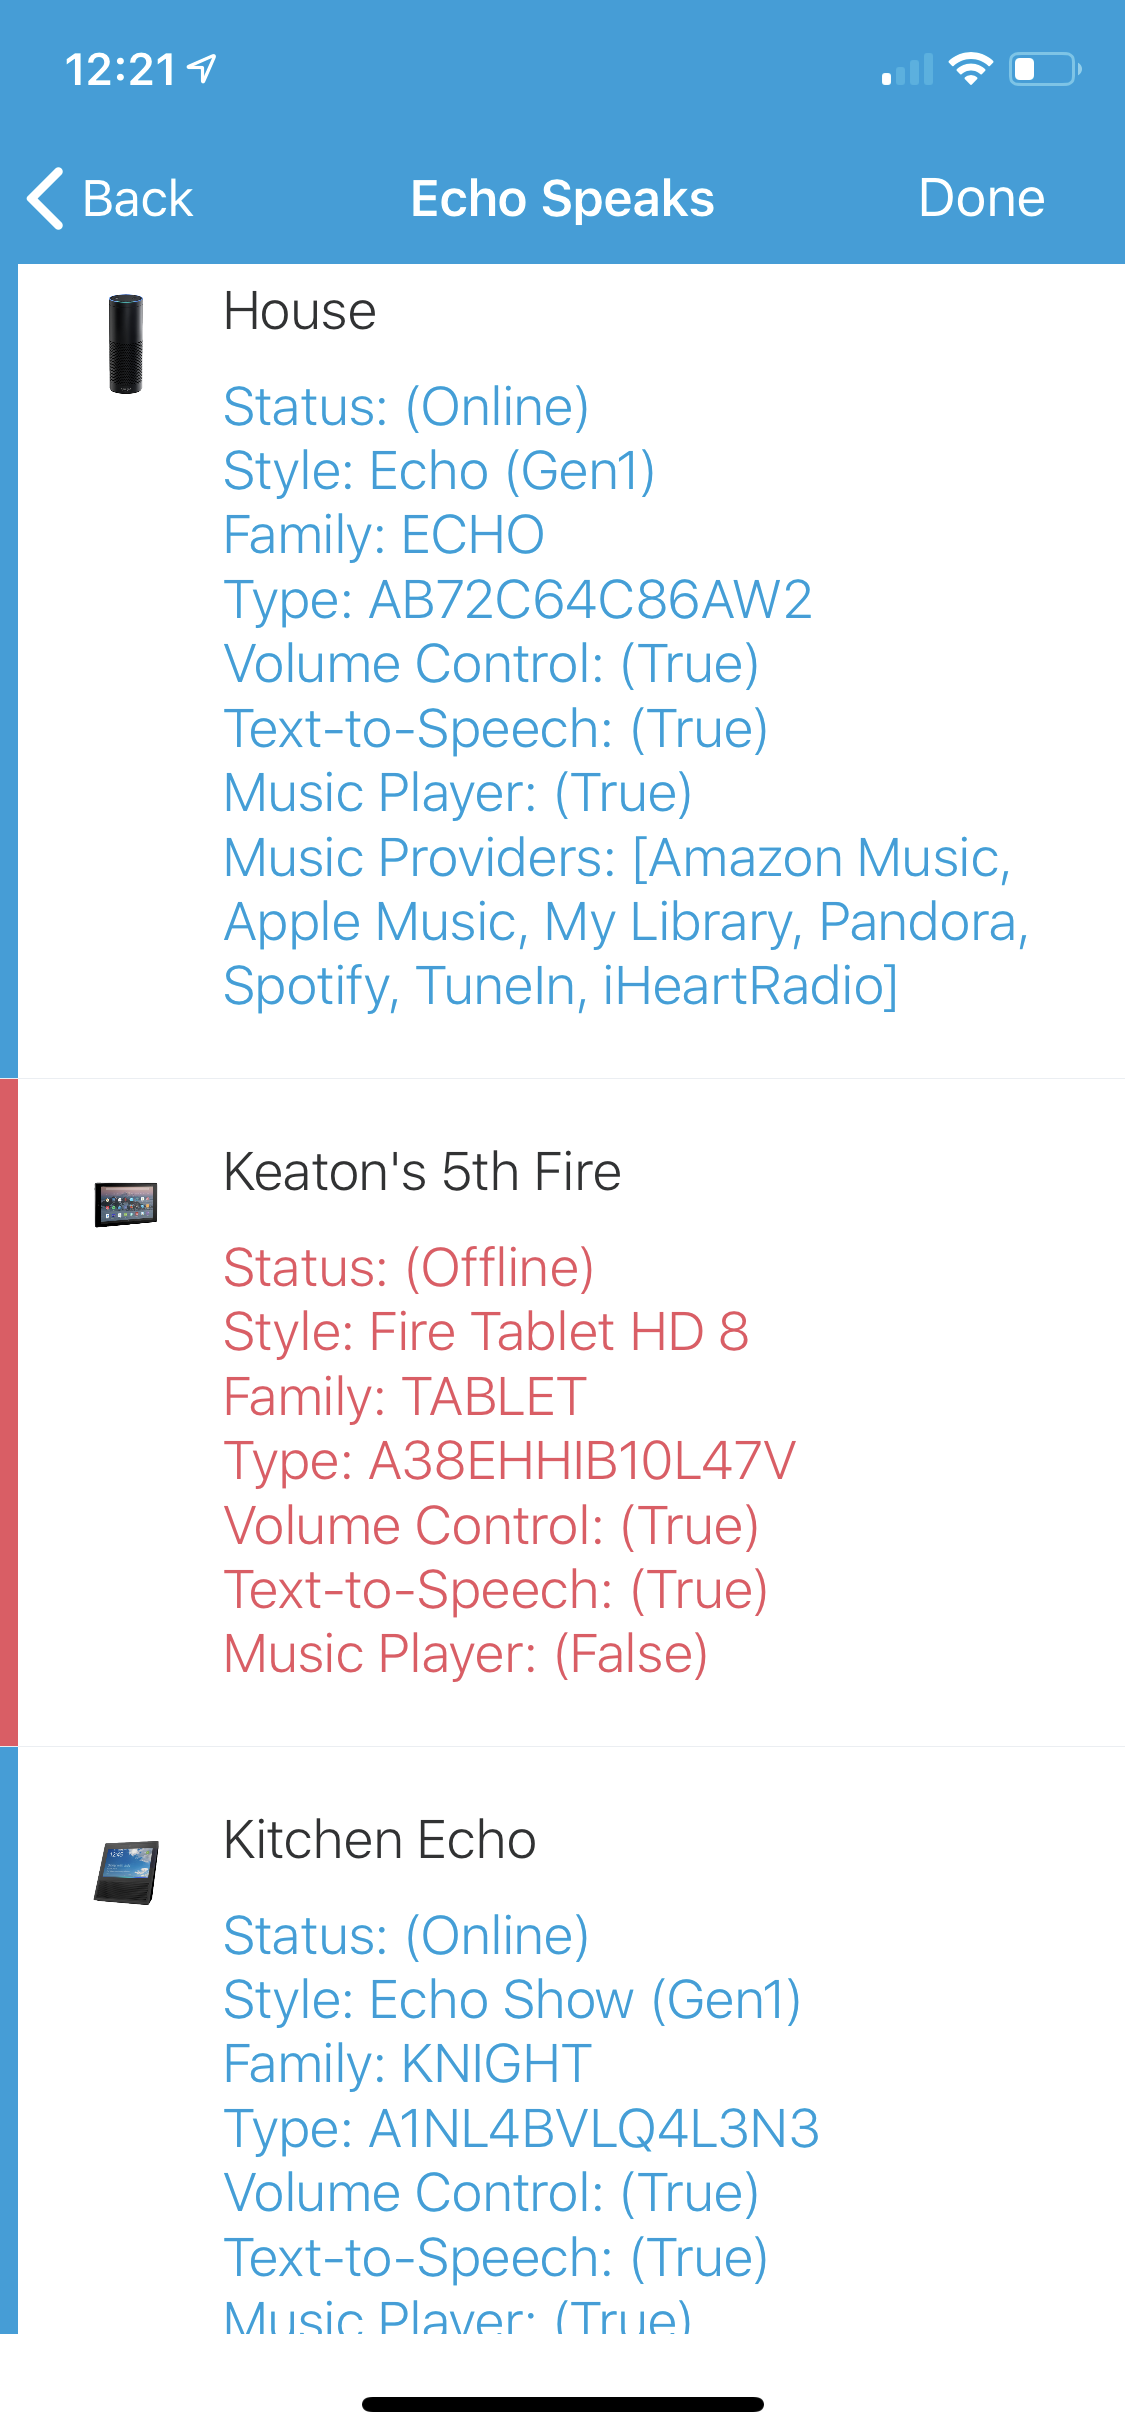 Kindle Fire Devices Show Offline · Issue #46 · tonesto7/echo